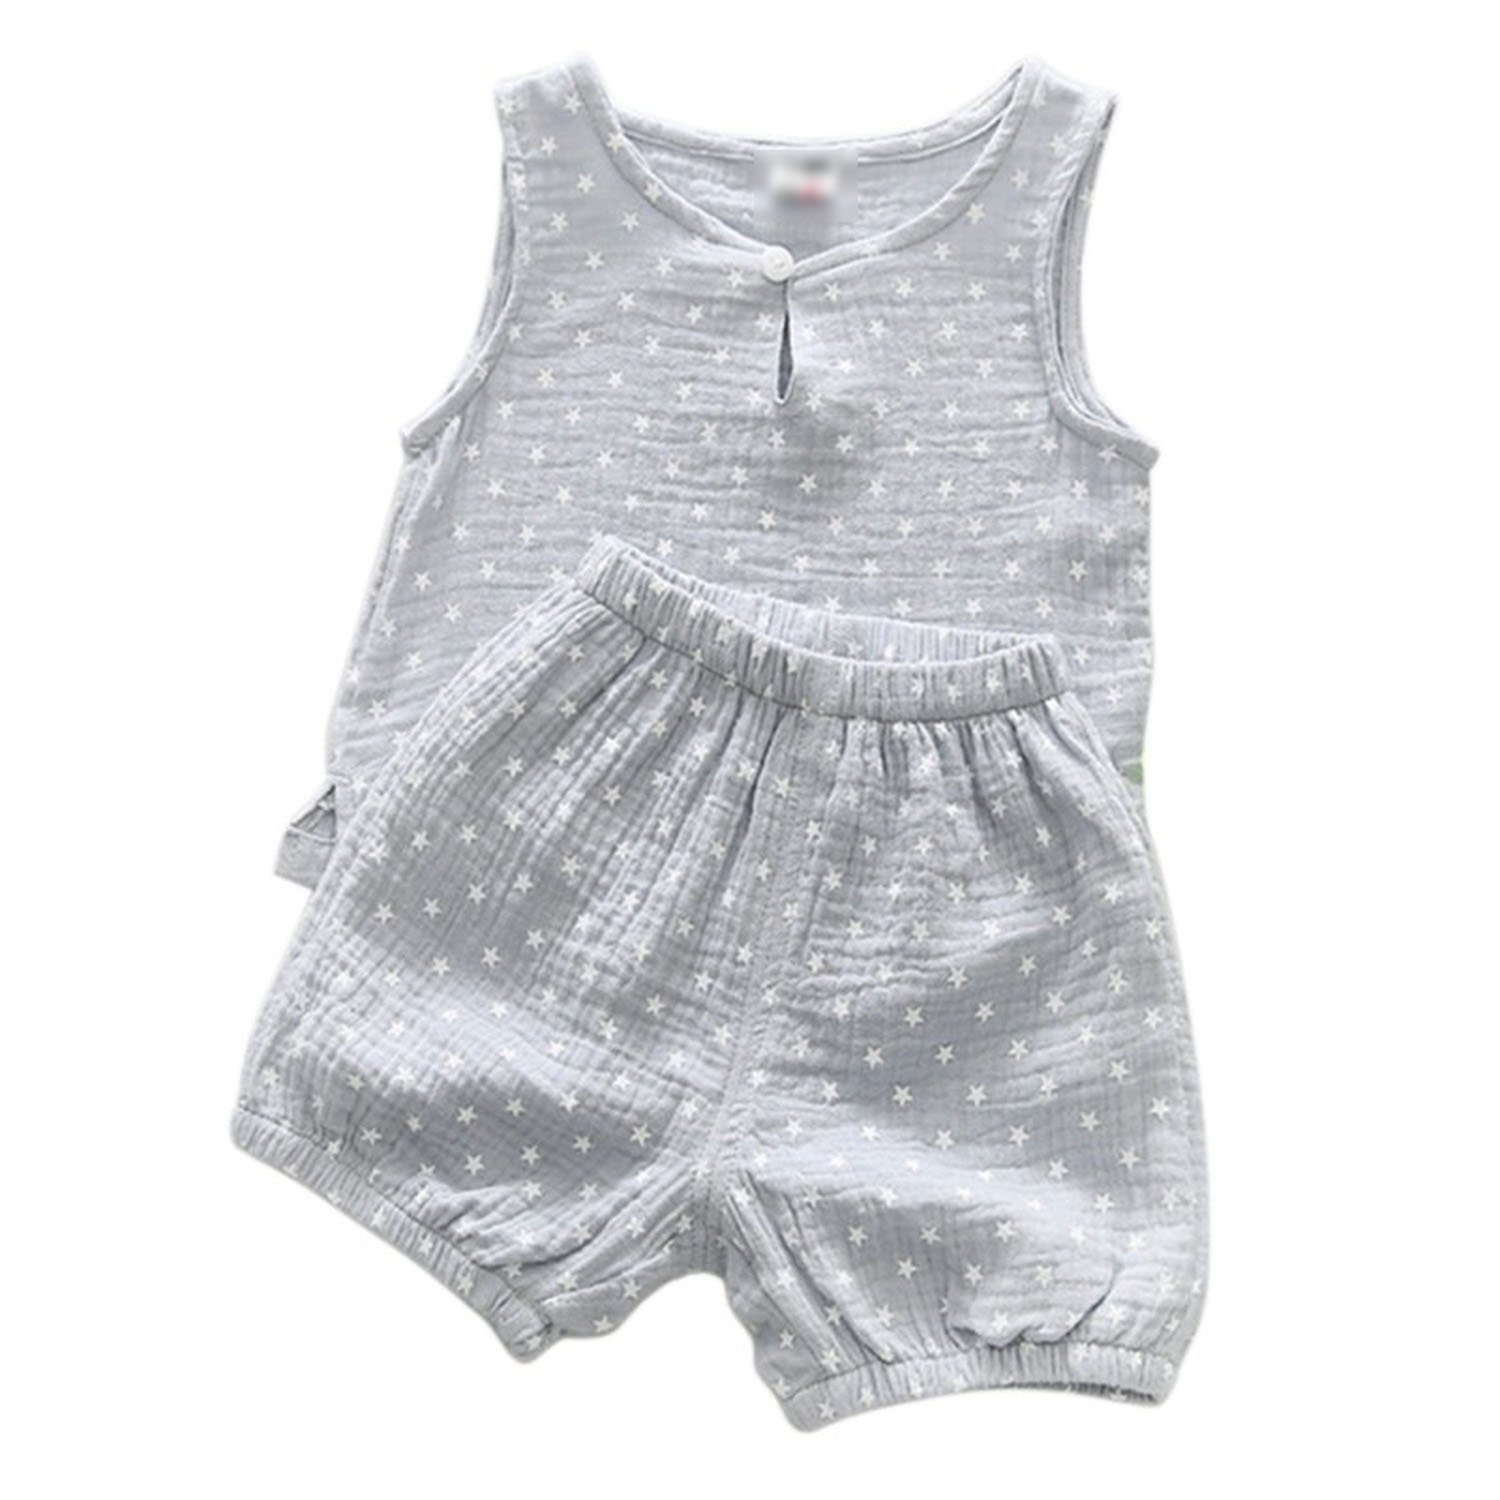 Children Star Tree Printed Sleeveless Boys Girls Tank Tops and Shorts 2 Pcs Sets,Gray,24M